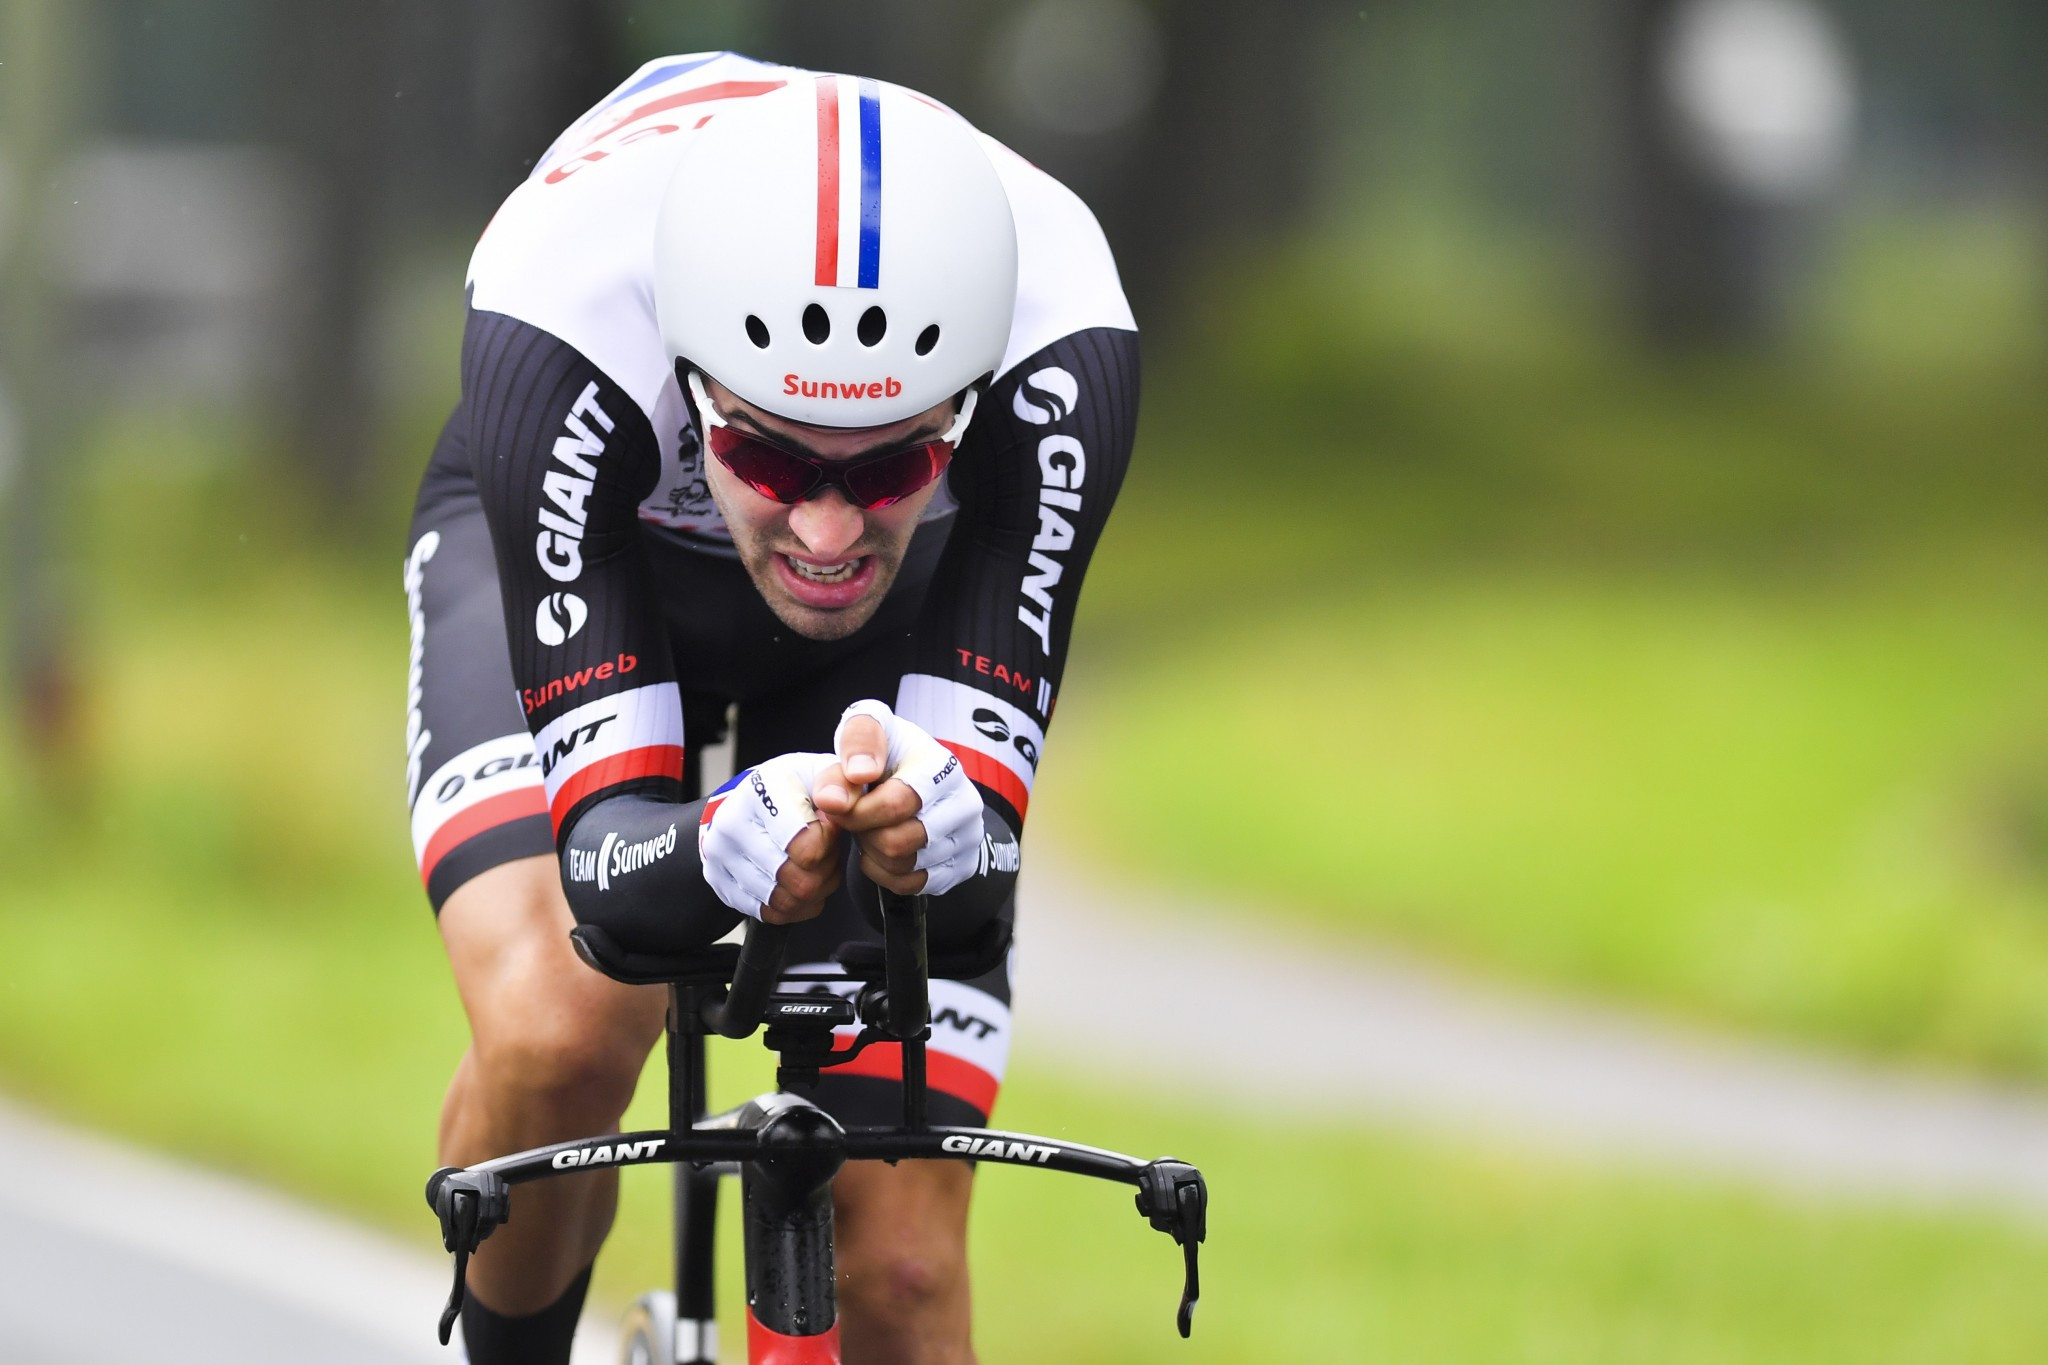 Küng earns BinckBank Tour race lead after time trial success